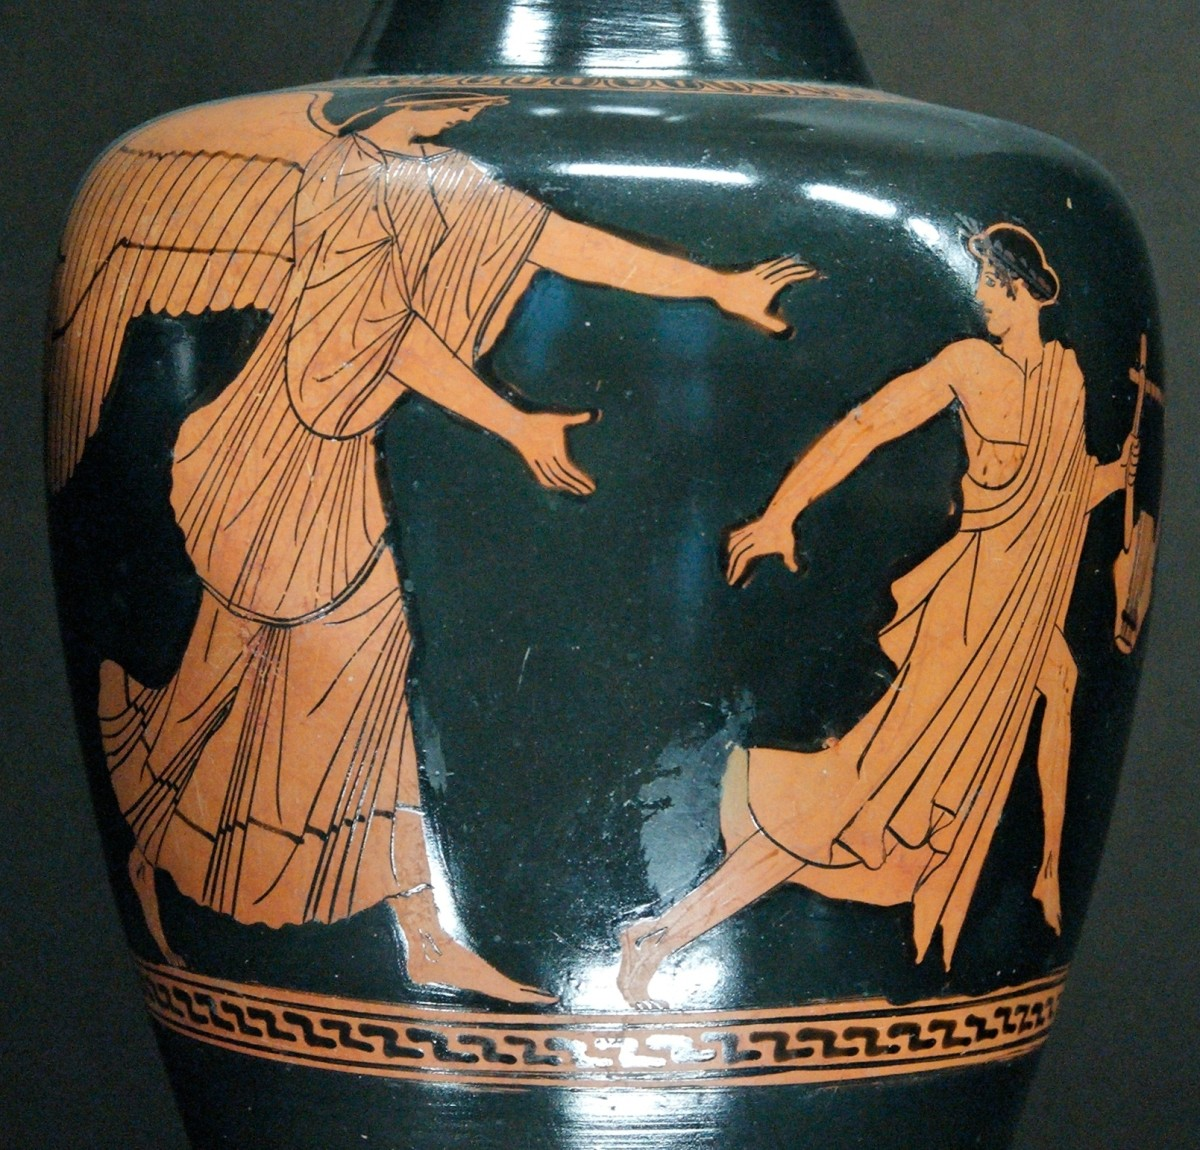 Eos pursues the reluctant Tithonus, who holds a lyre